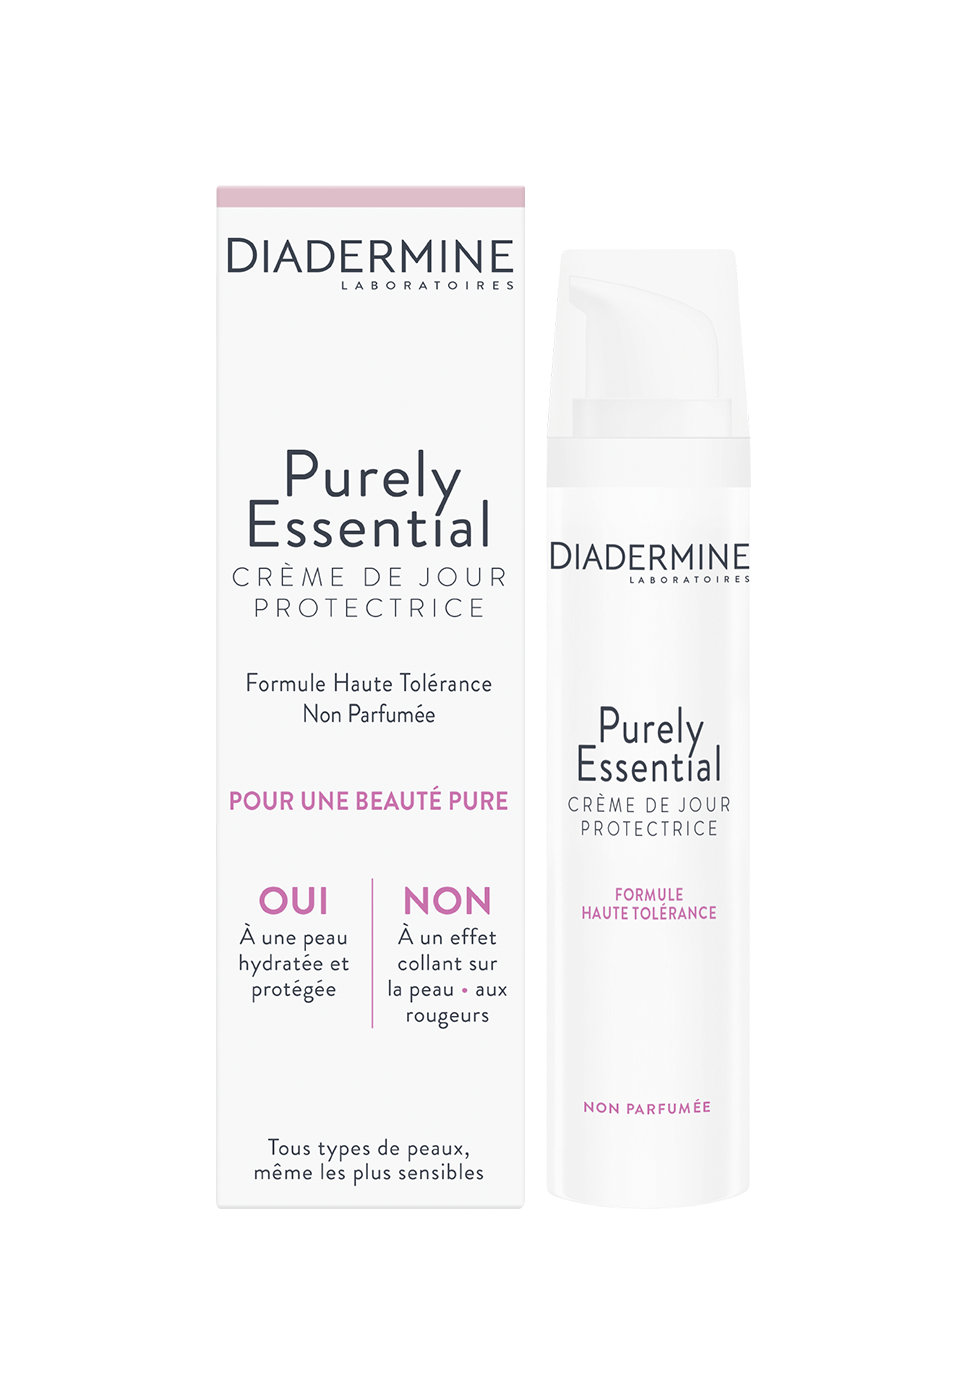 diadermine_purely_essentials_creme_jour